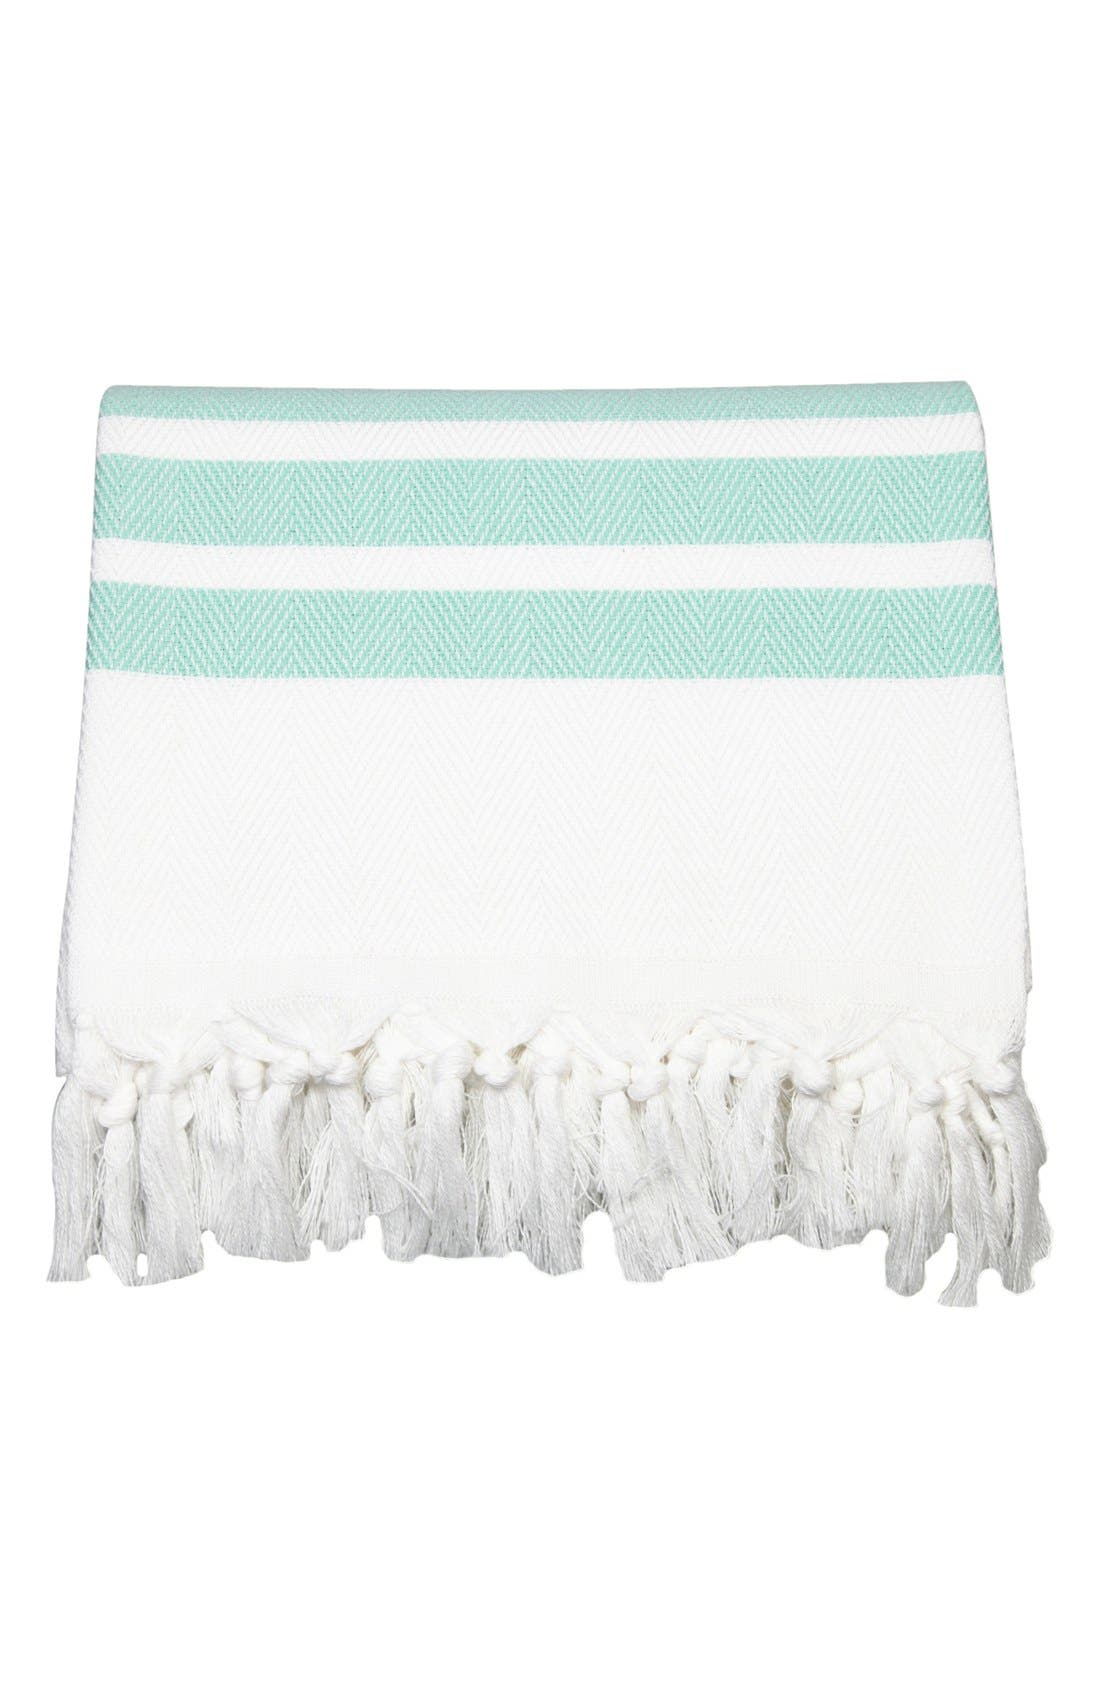 Alternate Image 4  - Linum Home Textiles Herringbone Striped Turkish Pestemal Towel